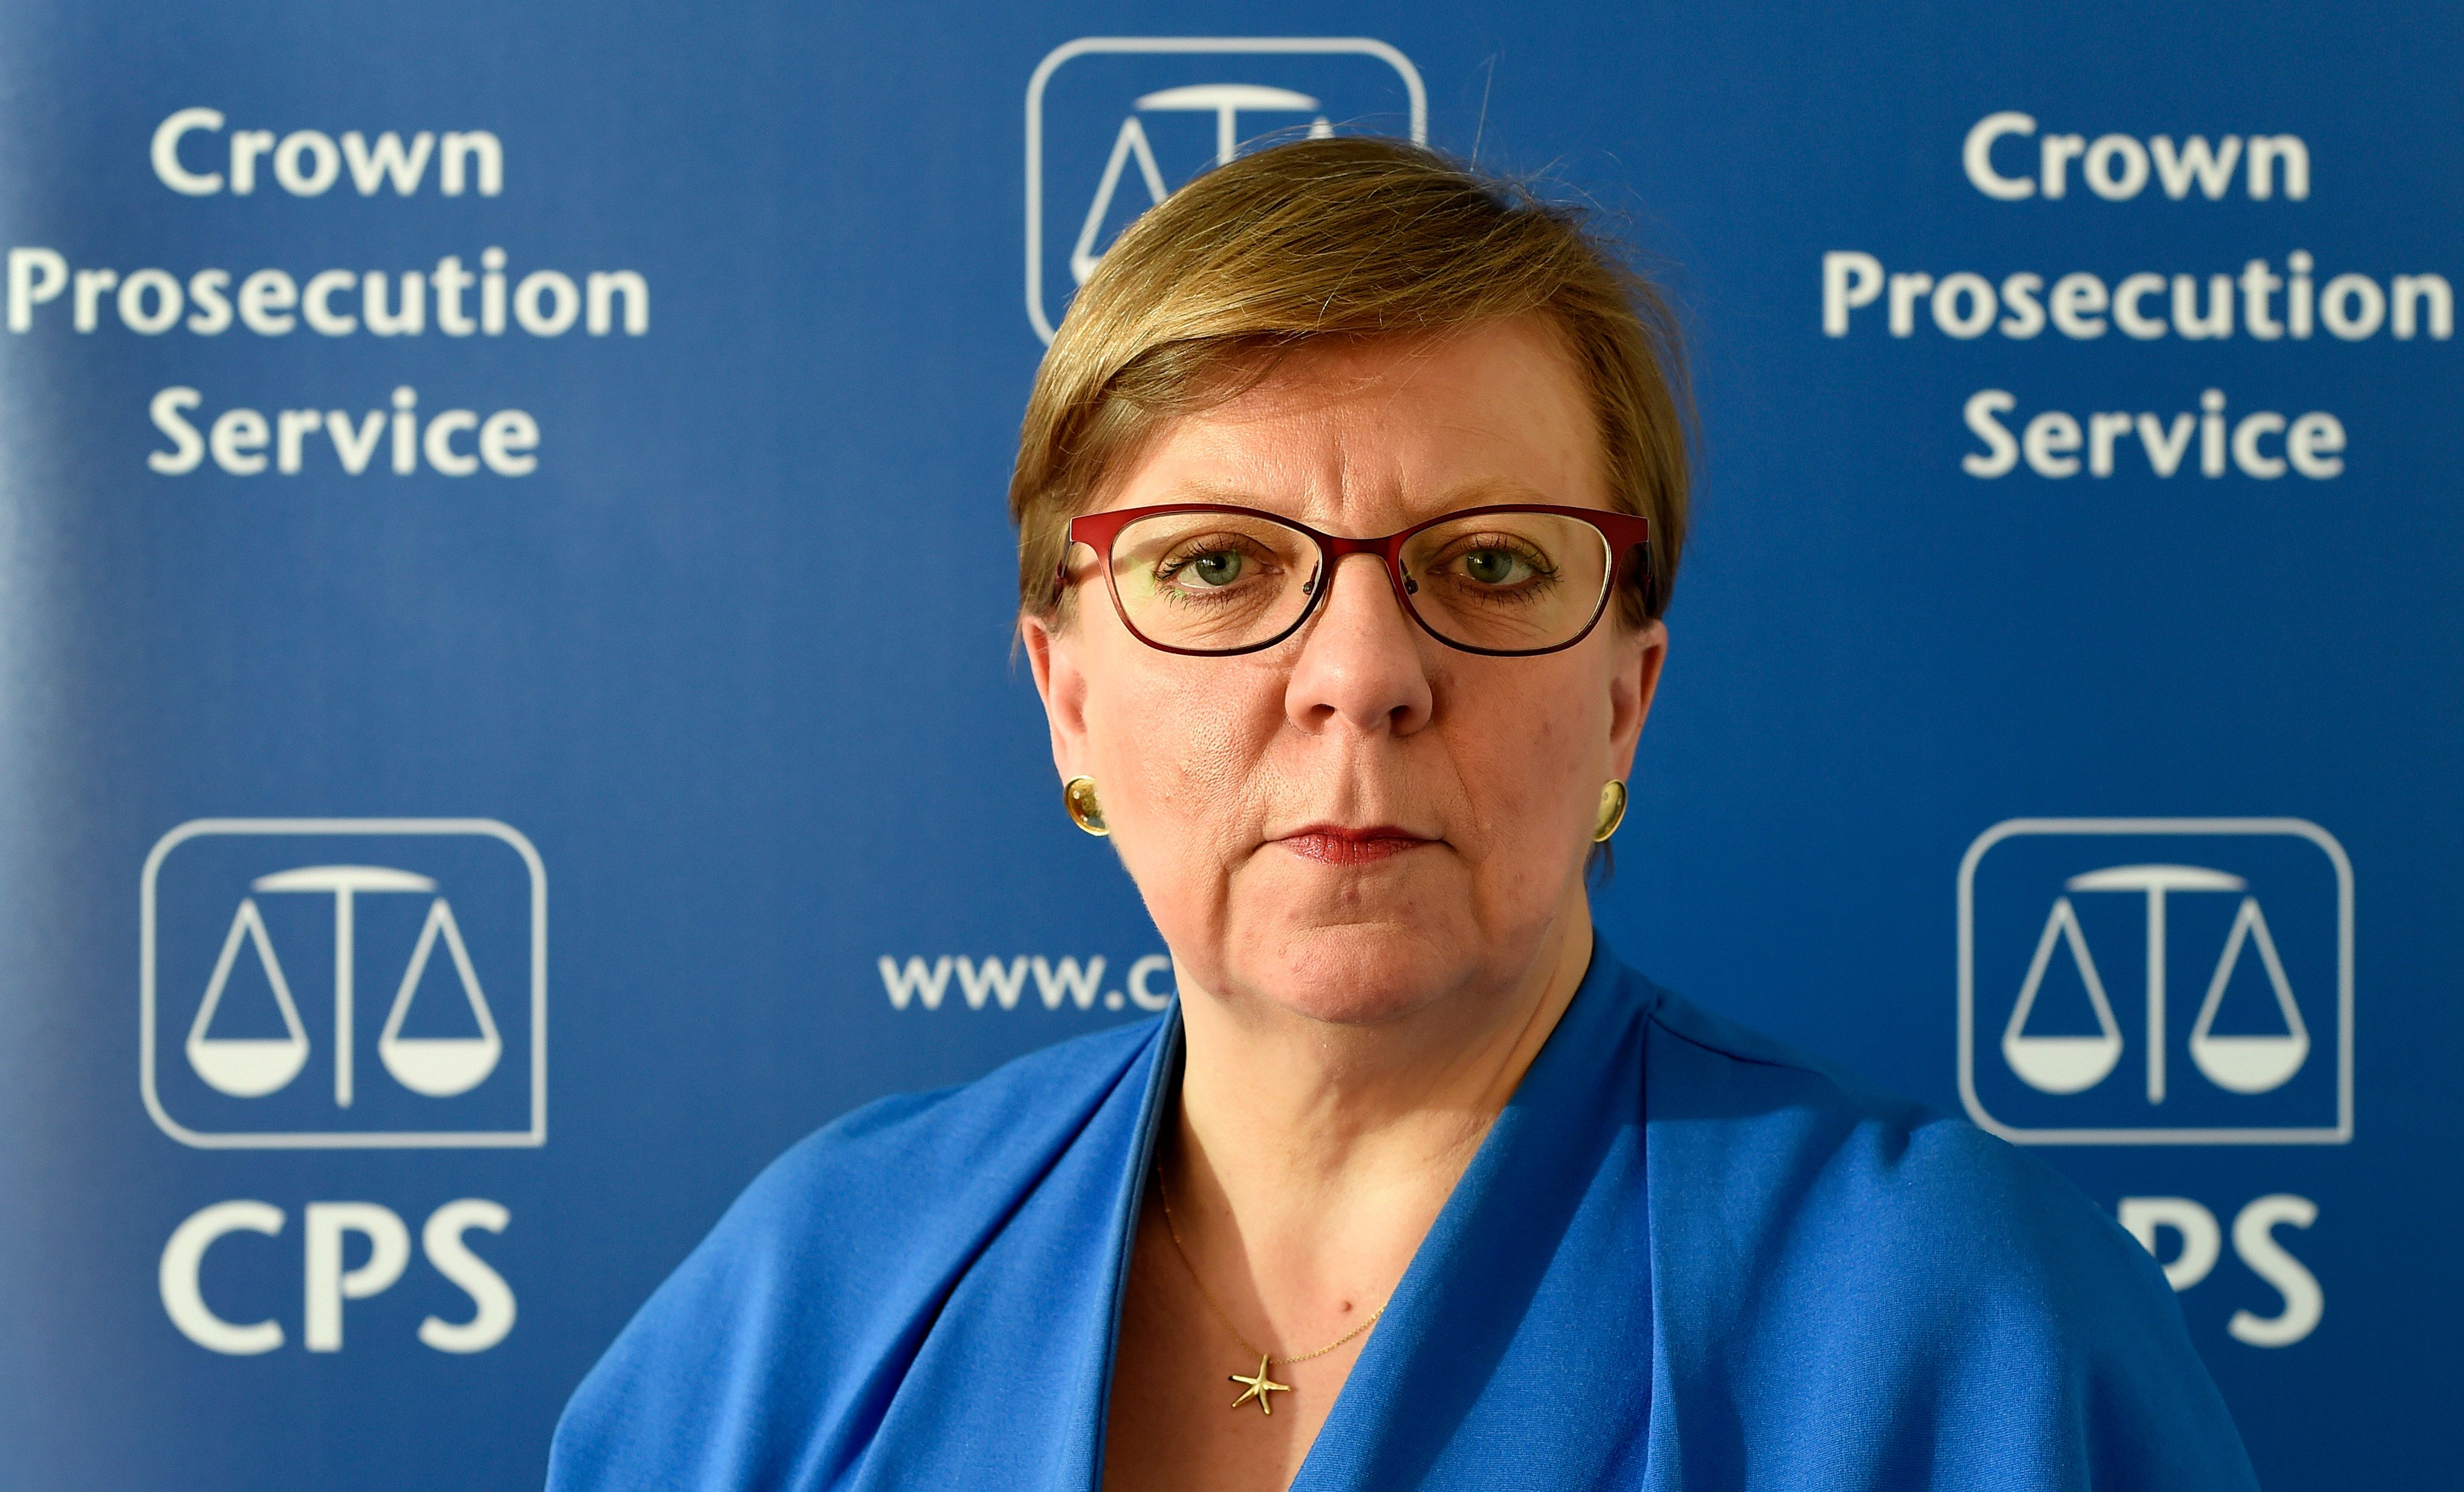 he Director of Public Prosecutions Alison Saunders is to stand down in